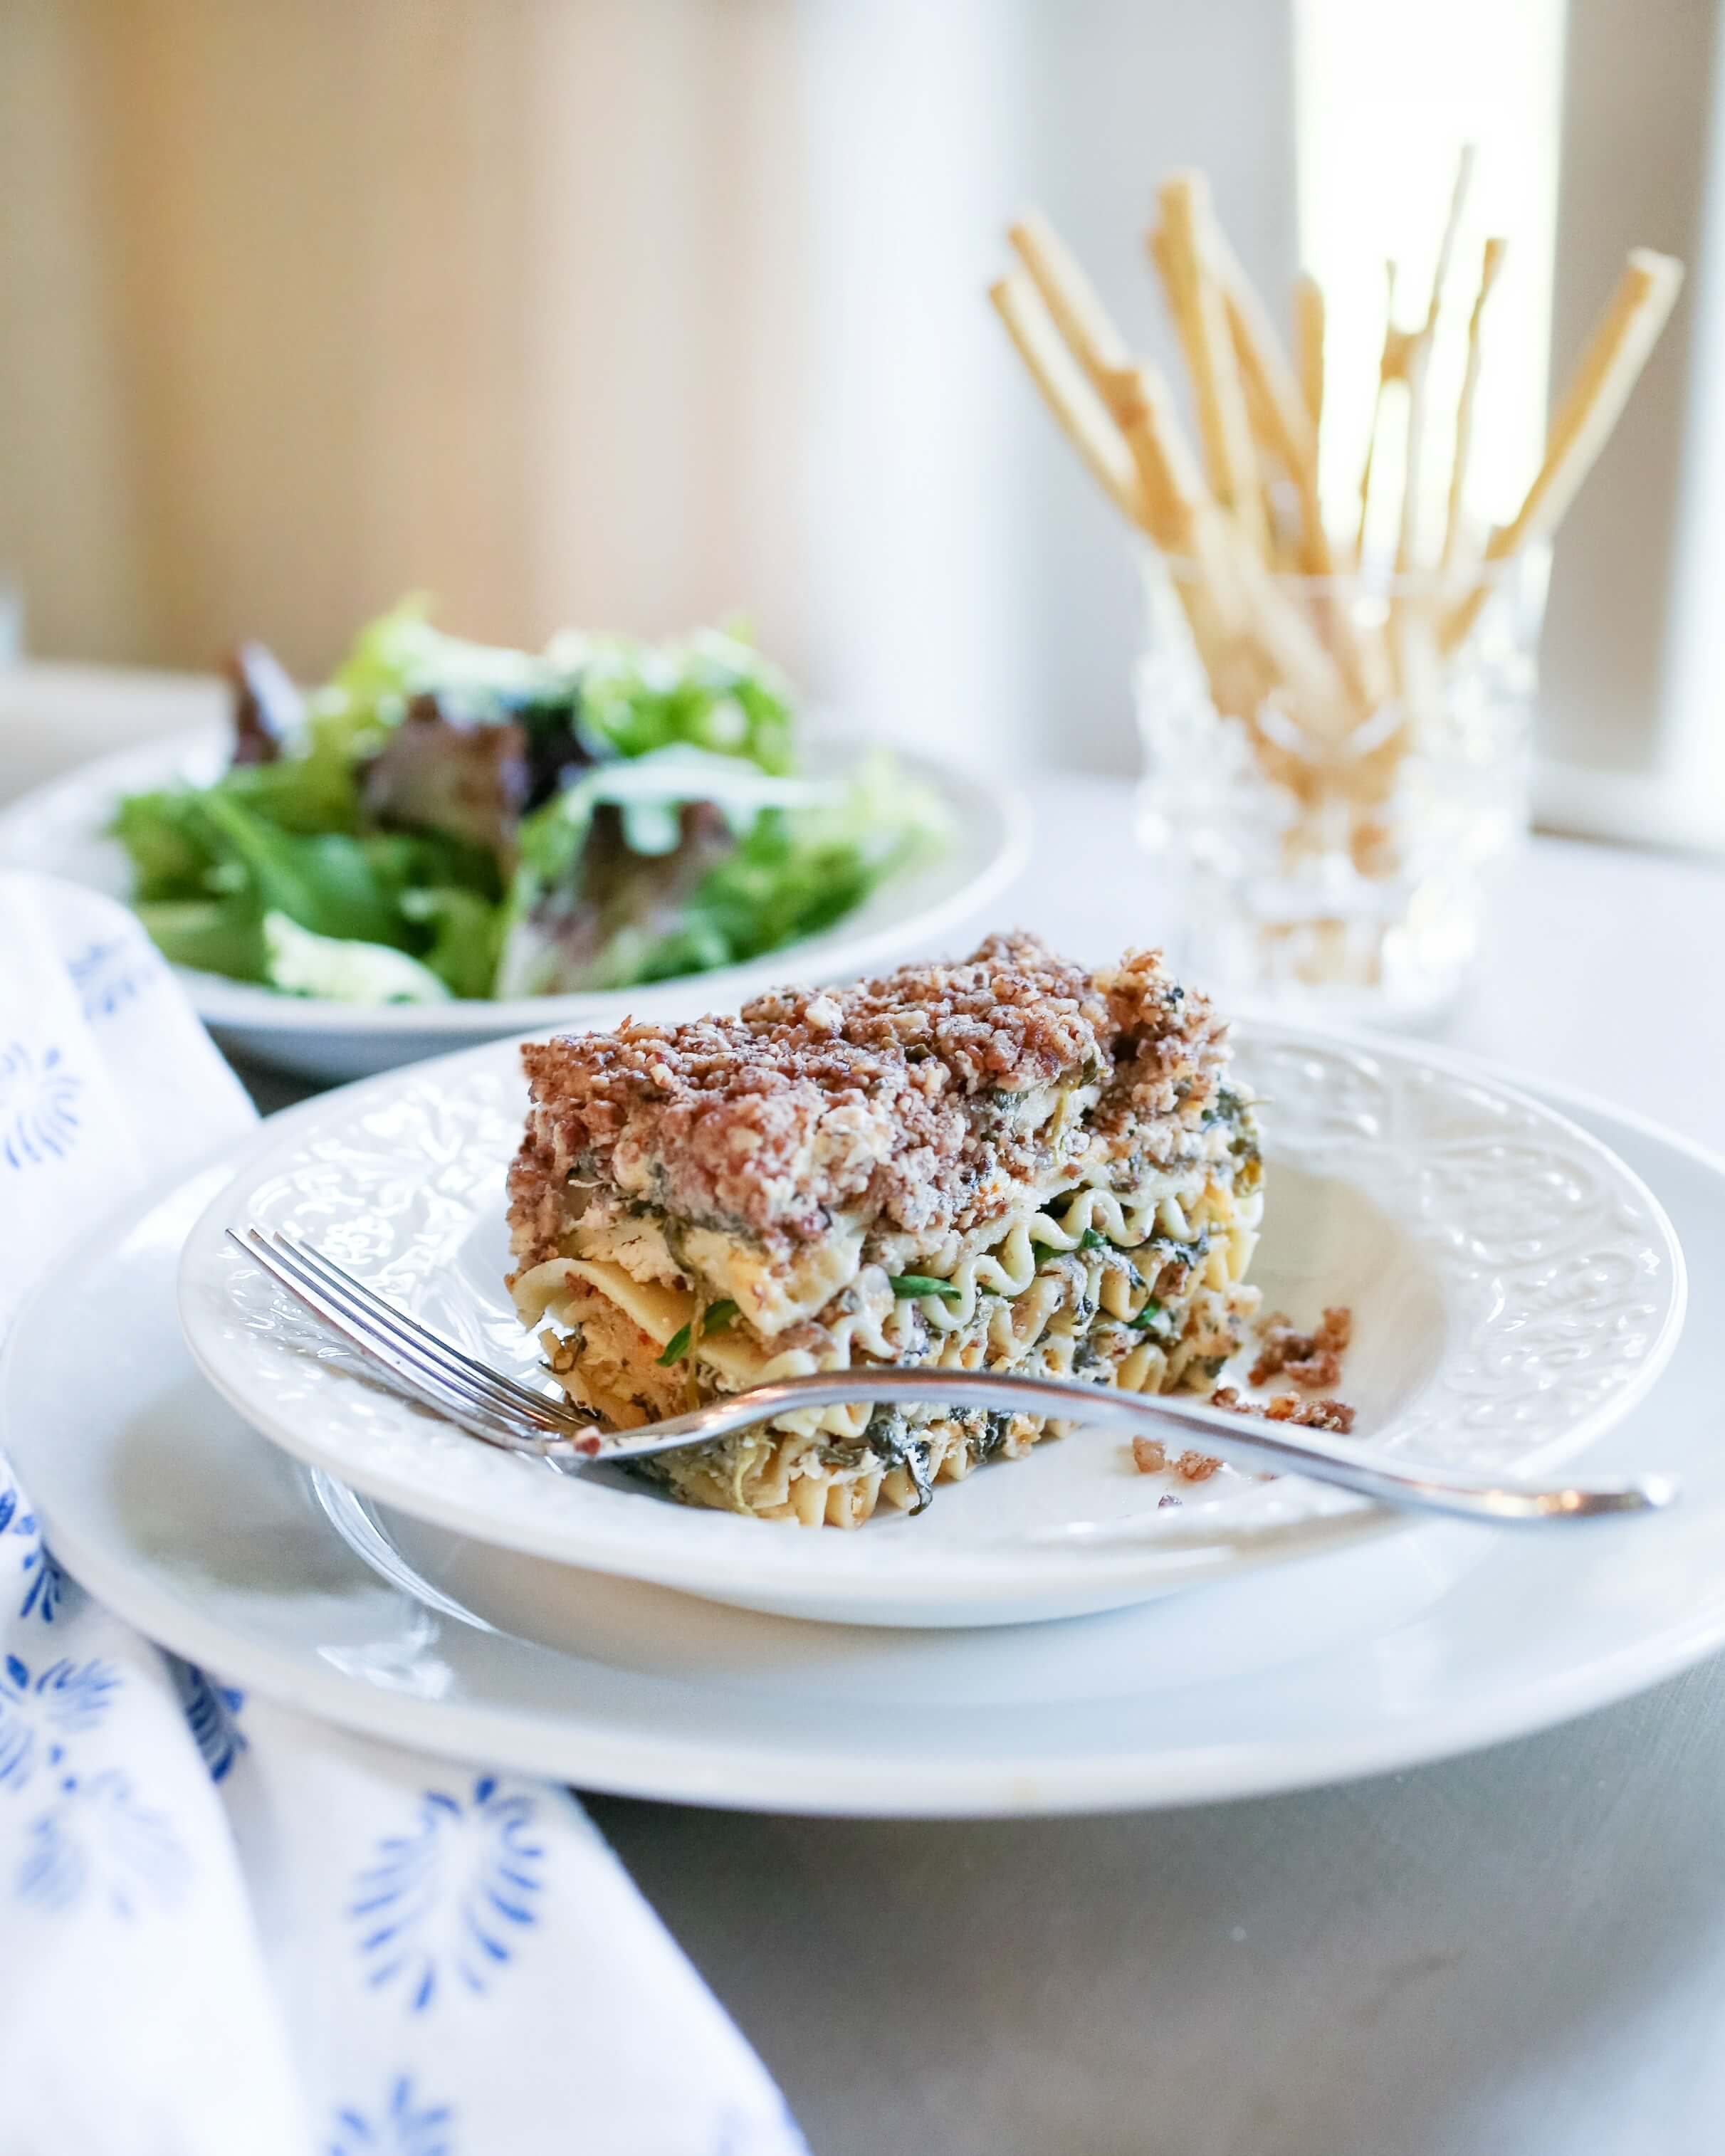 Chicken Florentine Lasagna photo by Susan Scarborough